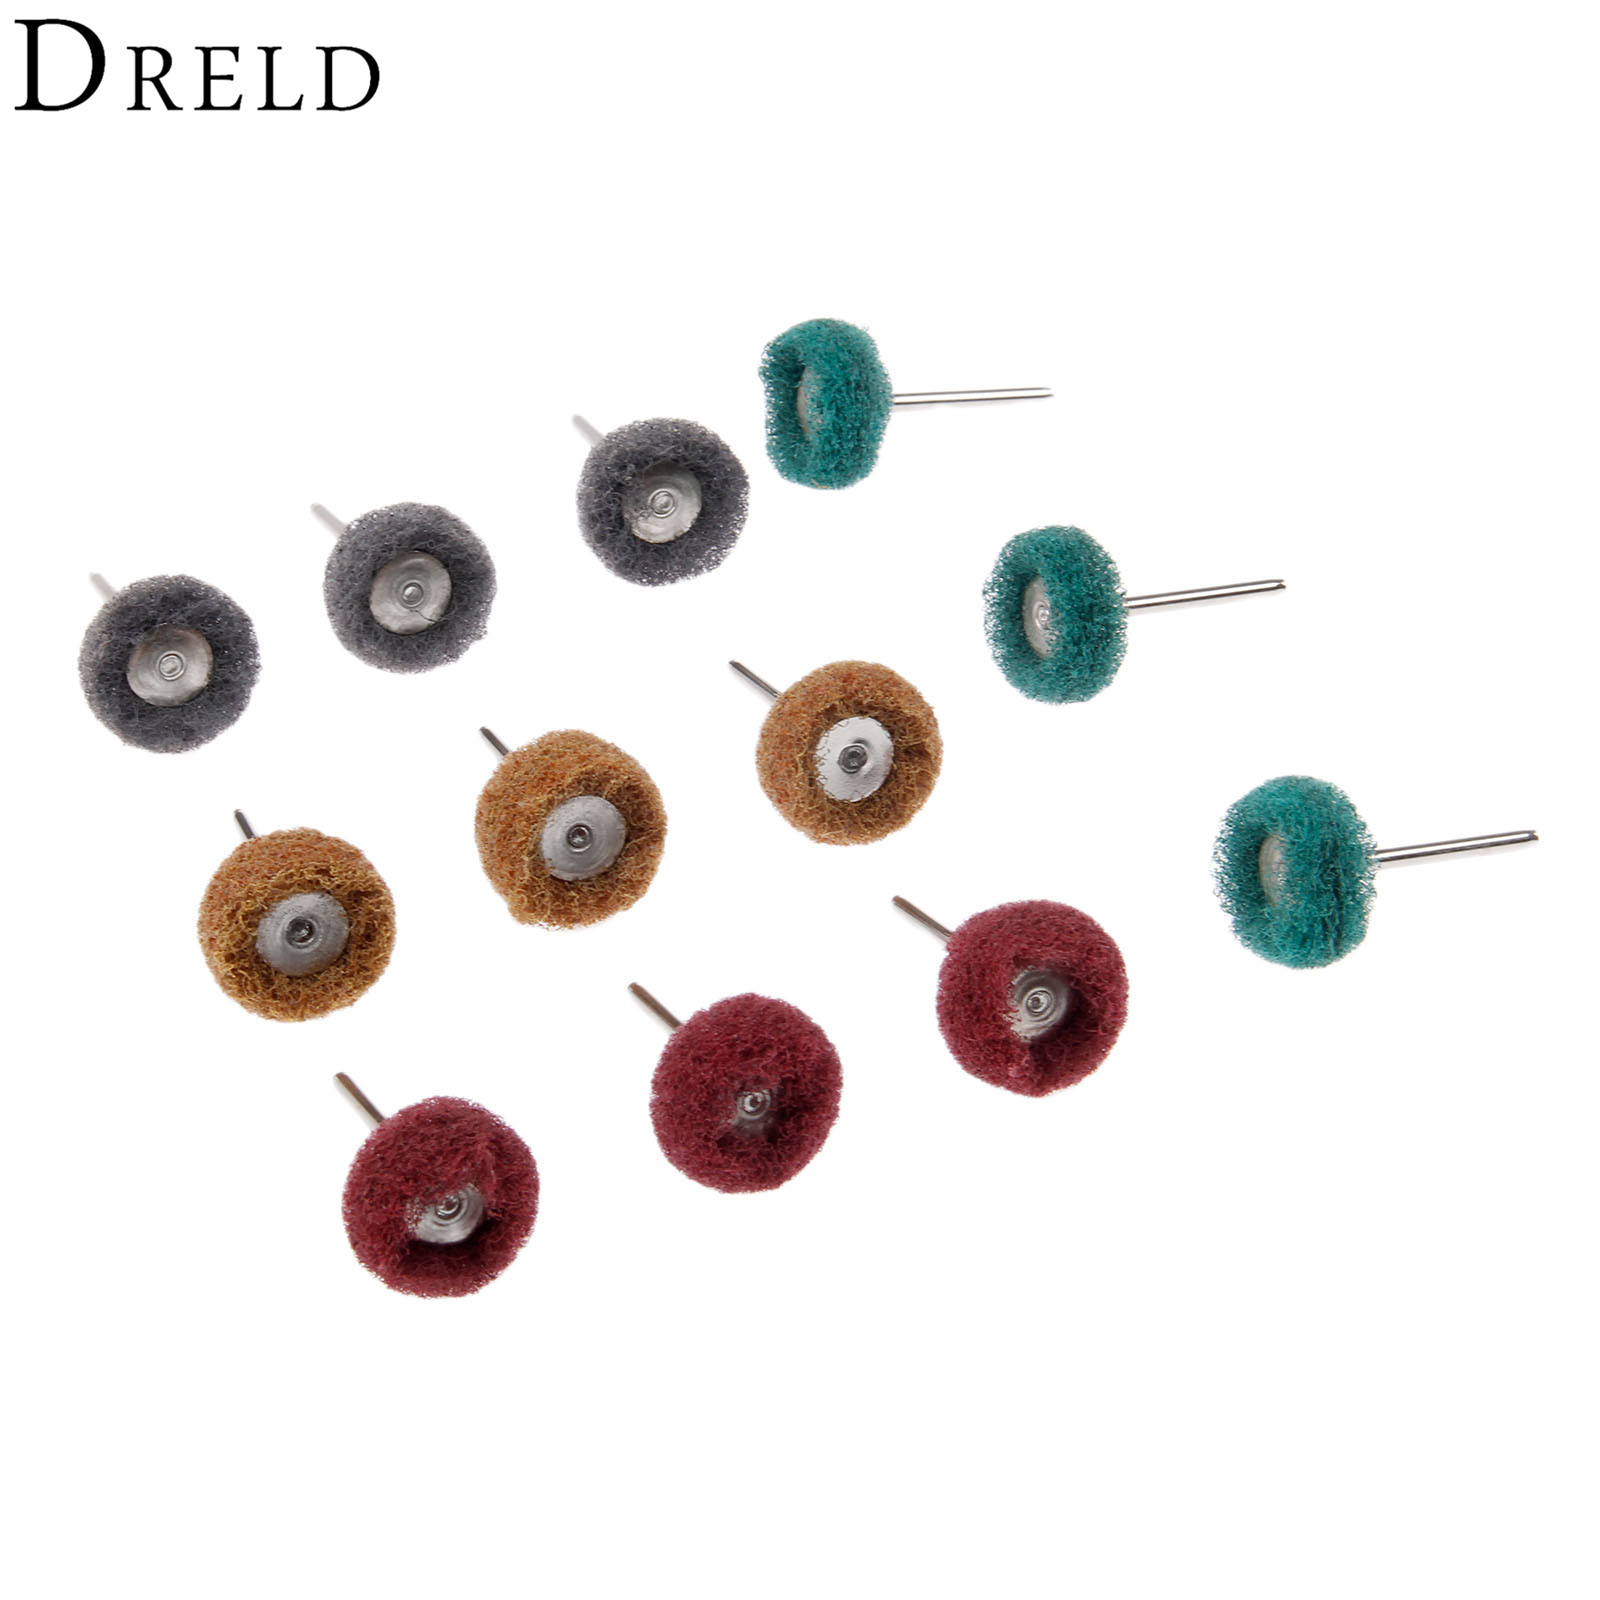 DRELD 12Pcs Dremel Accessories 25mm Abrasive Brush Metal Surface Grinding Buffing Polishing Wheel Set 3mm Shank For Rotary Tool